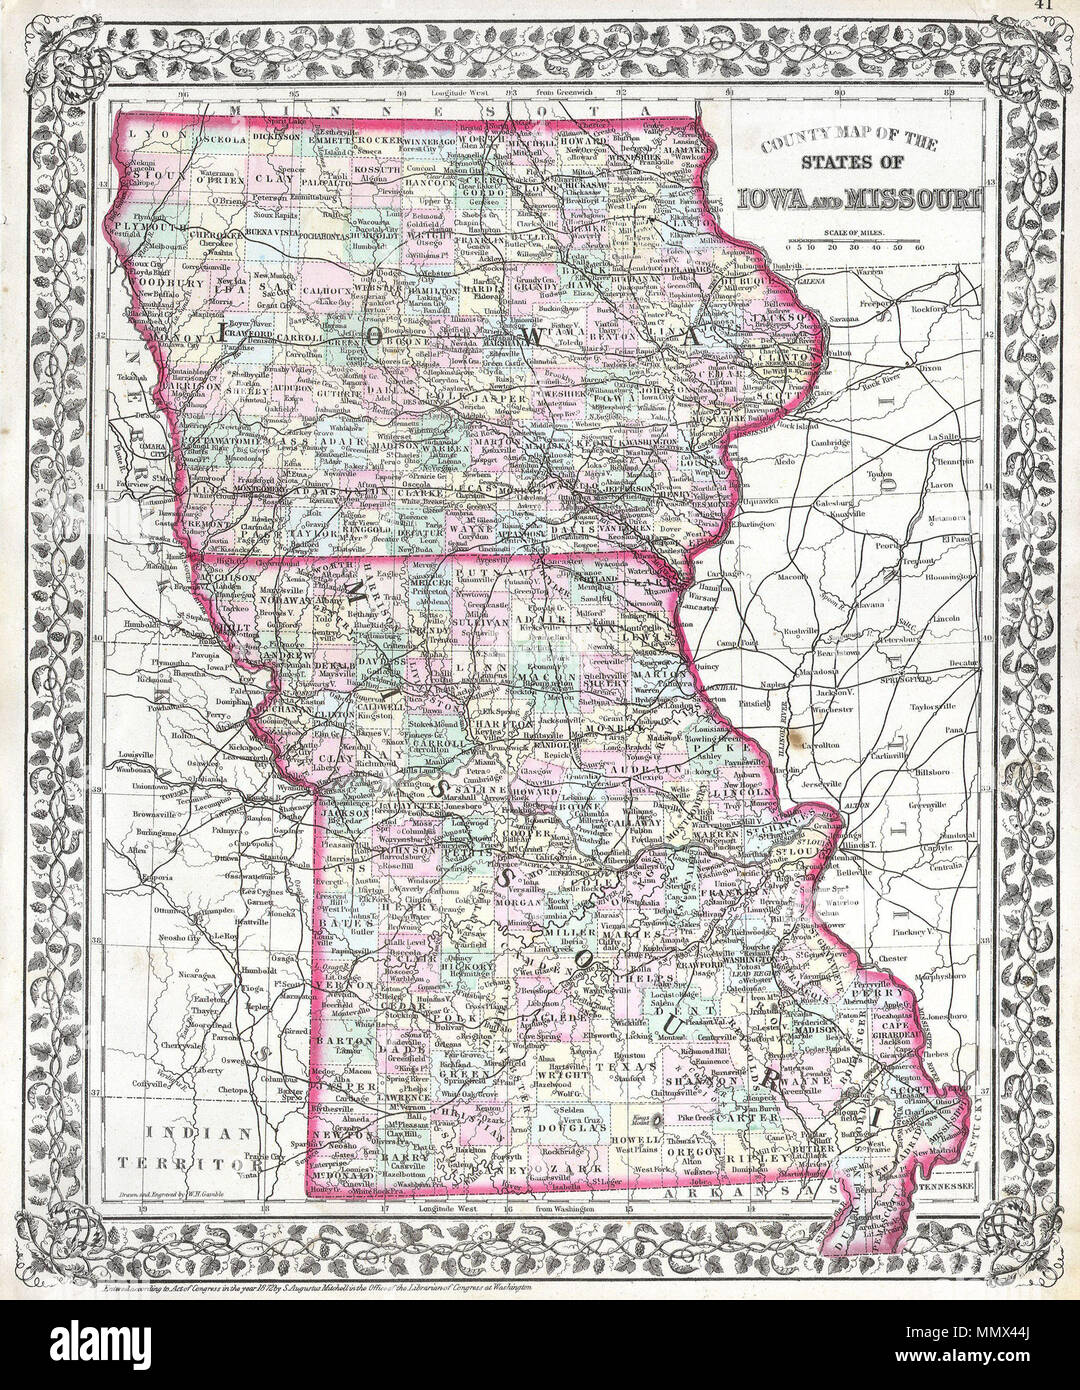 English This Hand Colored Antique Map Of Iowa And Missouri Is A